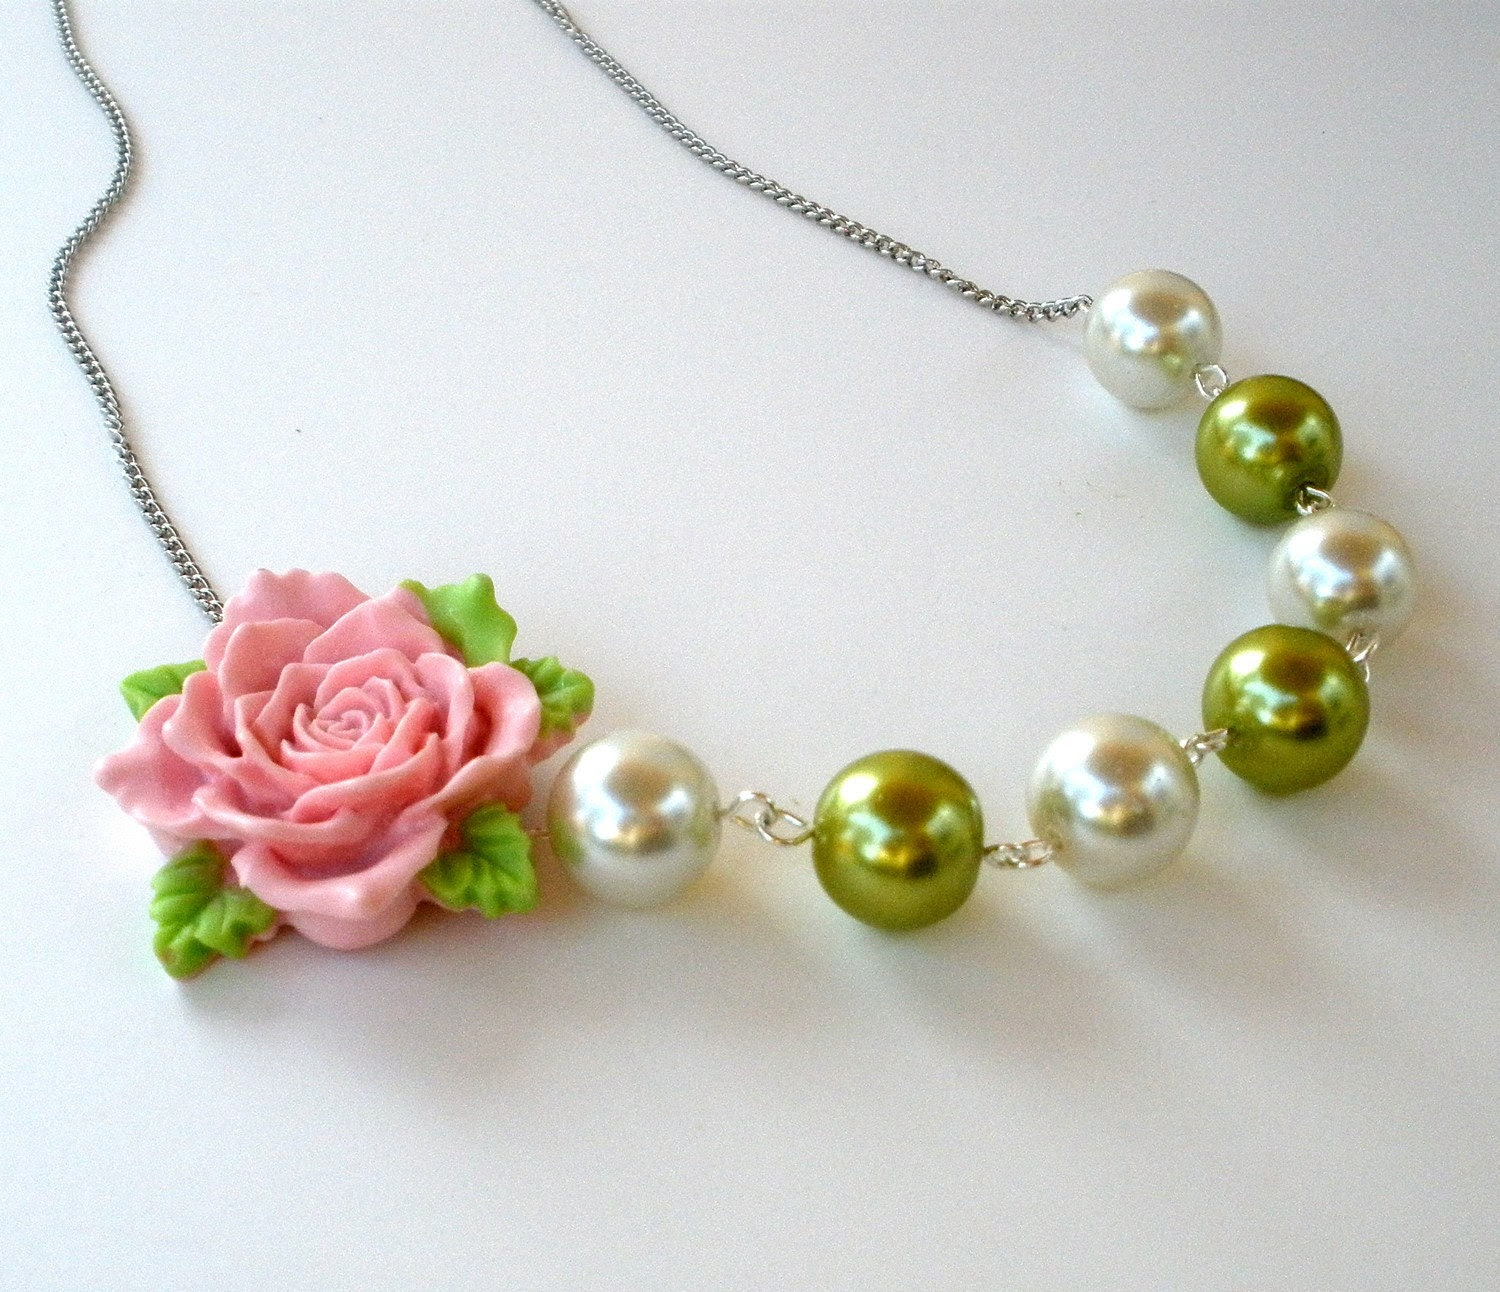 Pink Rose and Chartreuse Green Pearl Necklace - Romantic, Bridal, Bridesmaids Jewelry